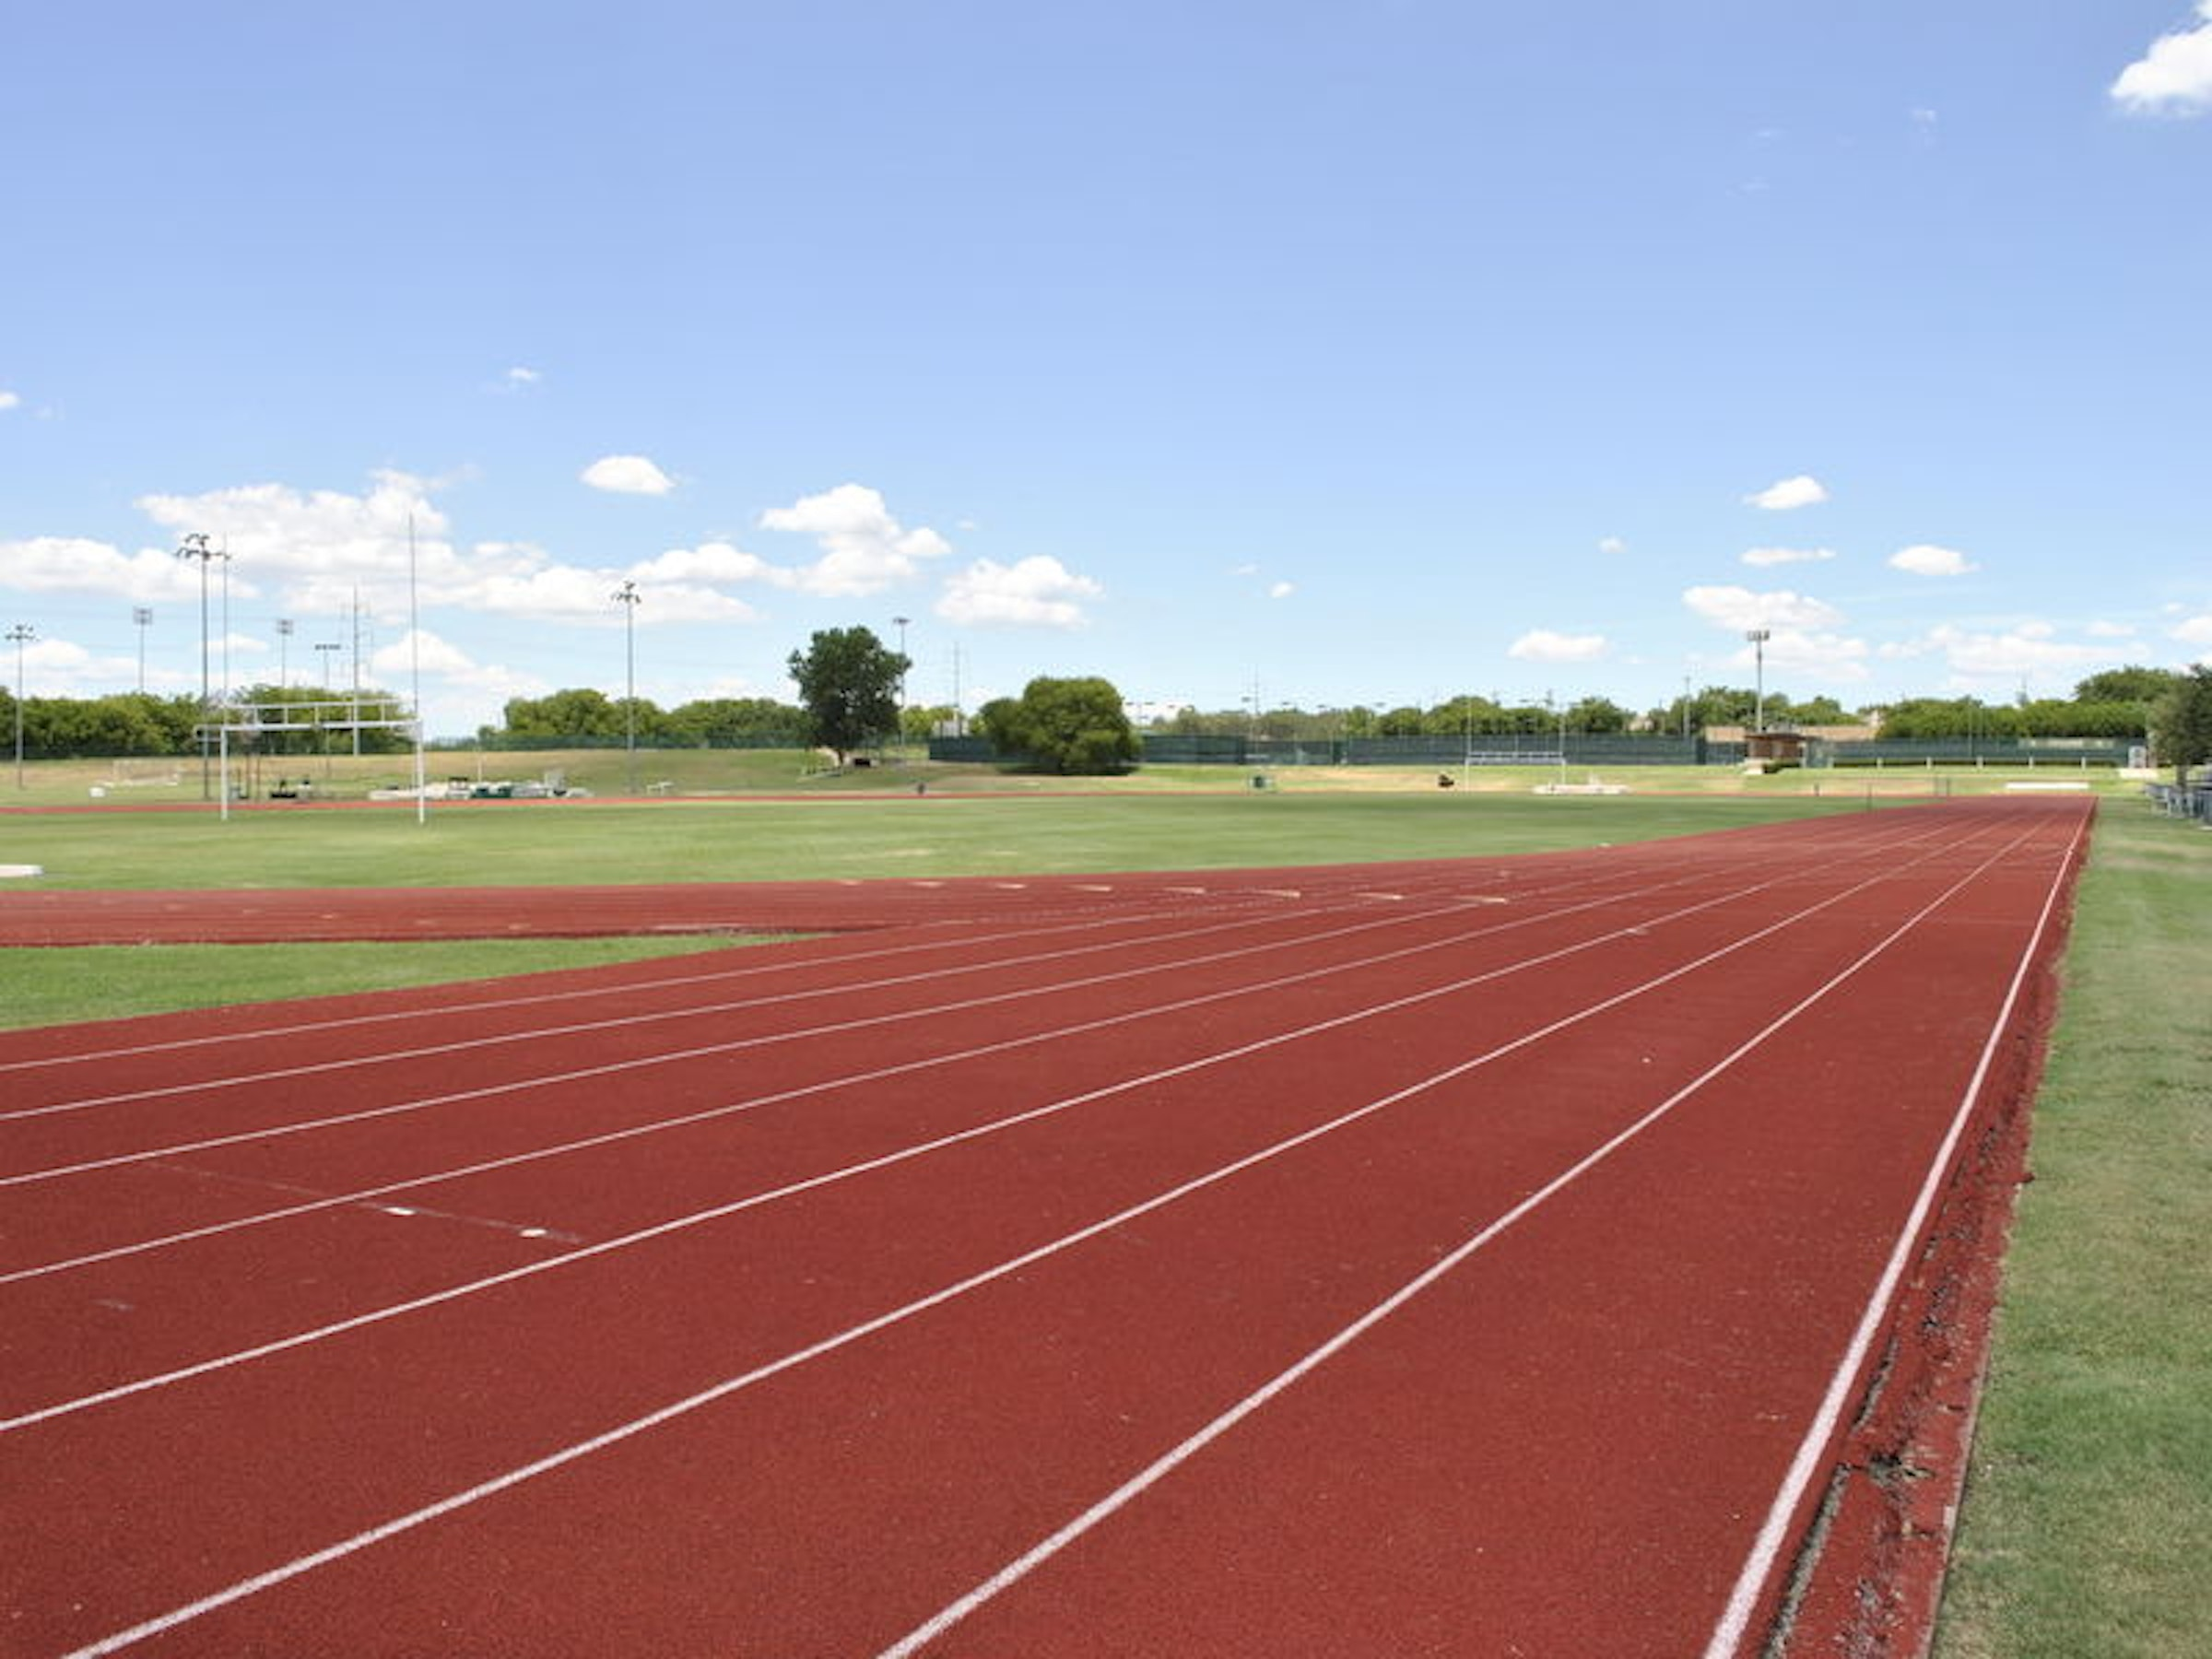 Greenhill Sports Center in Beyond Dallas